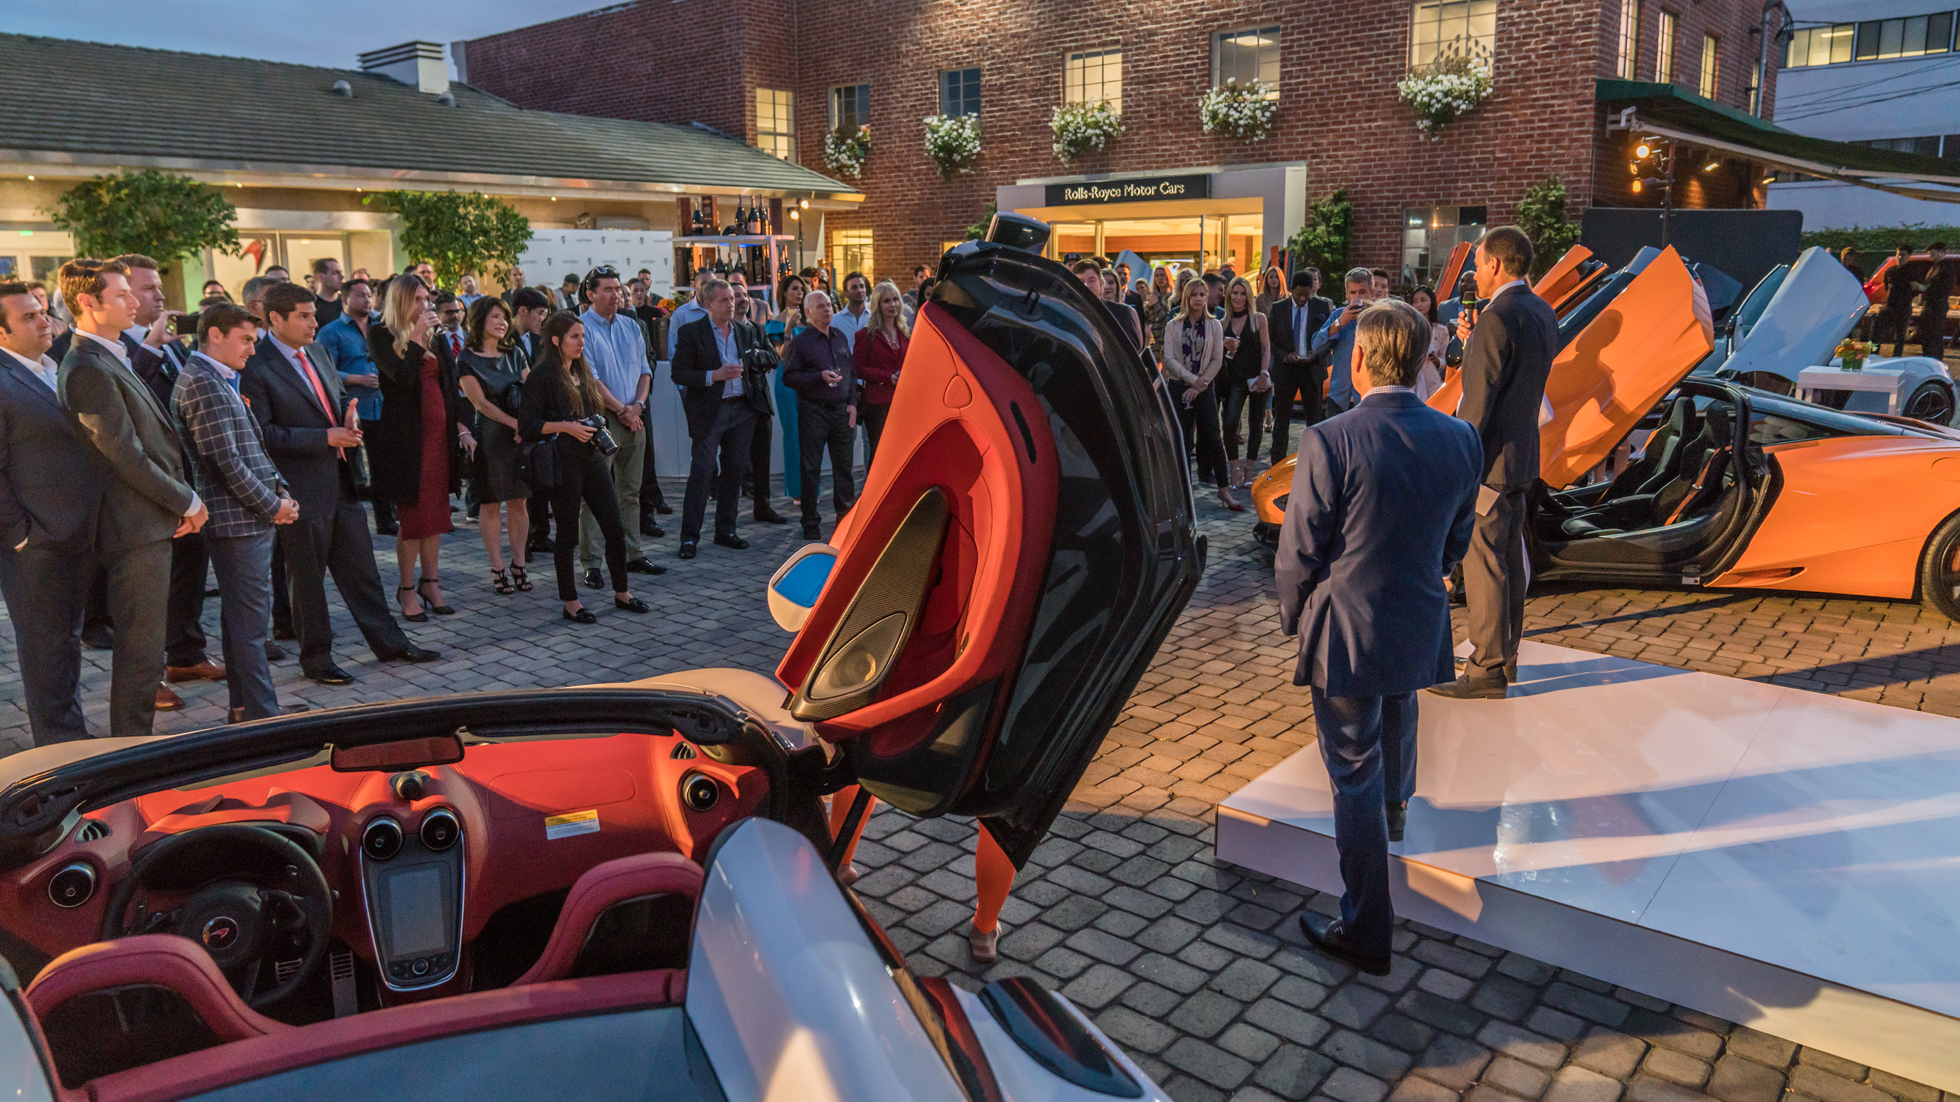 WELCOME TO OUR NEW SHOWROOM - MCLAREN BEVERLY HILLS GRAND OPENING